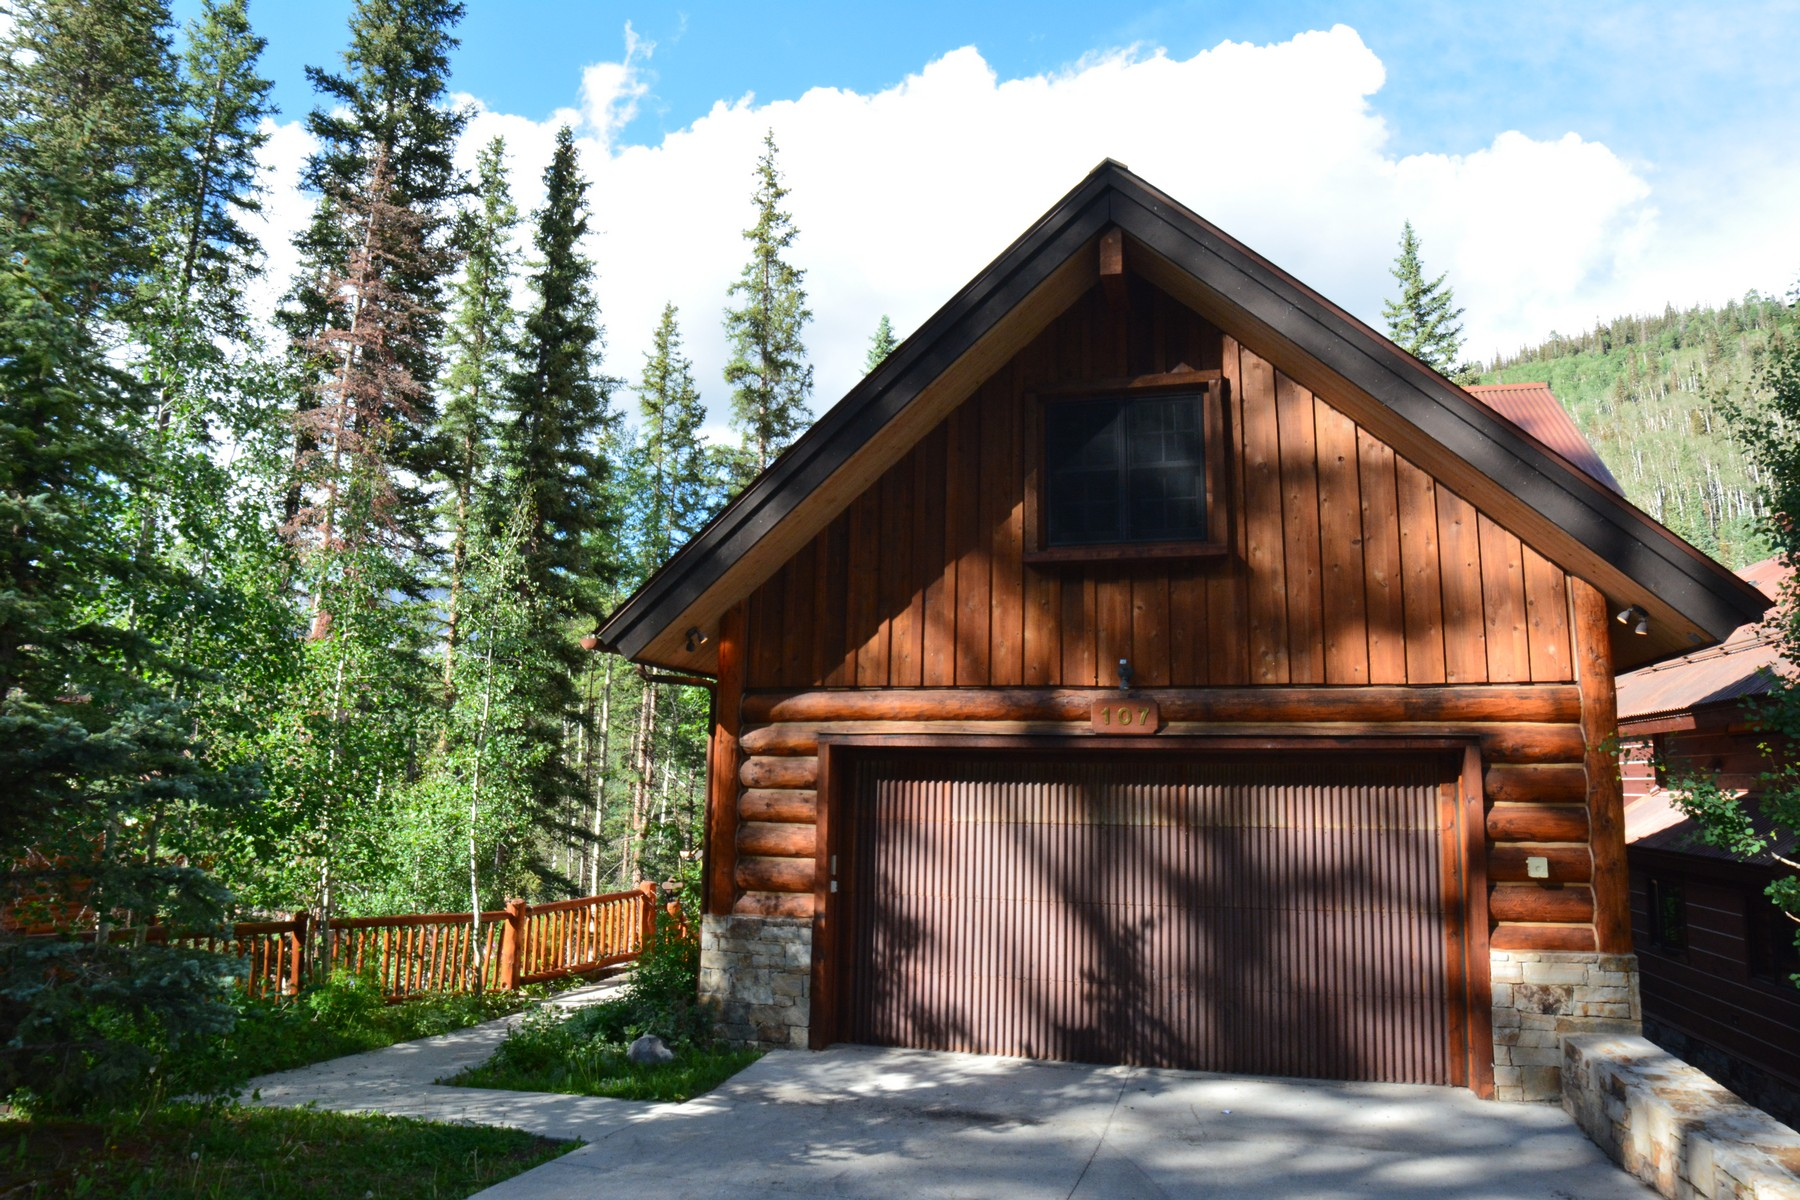 Single Family Home for Sale at 107 Cabins Lane Telluride, Colorado, 81435 United States